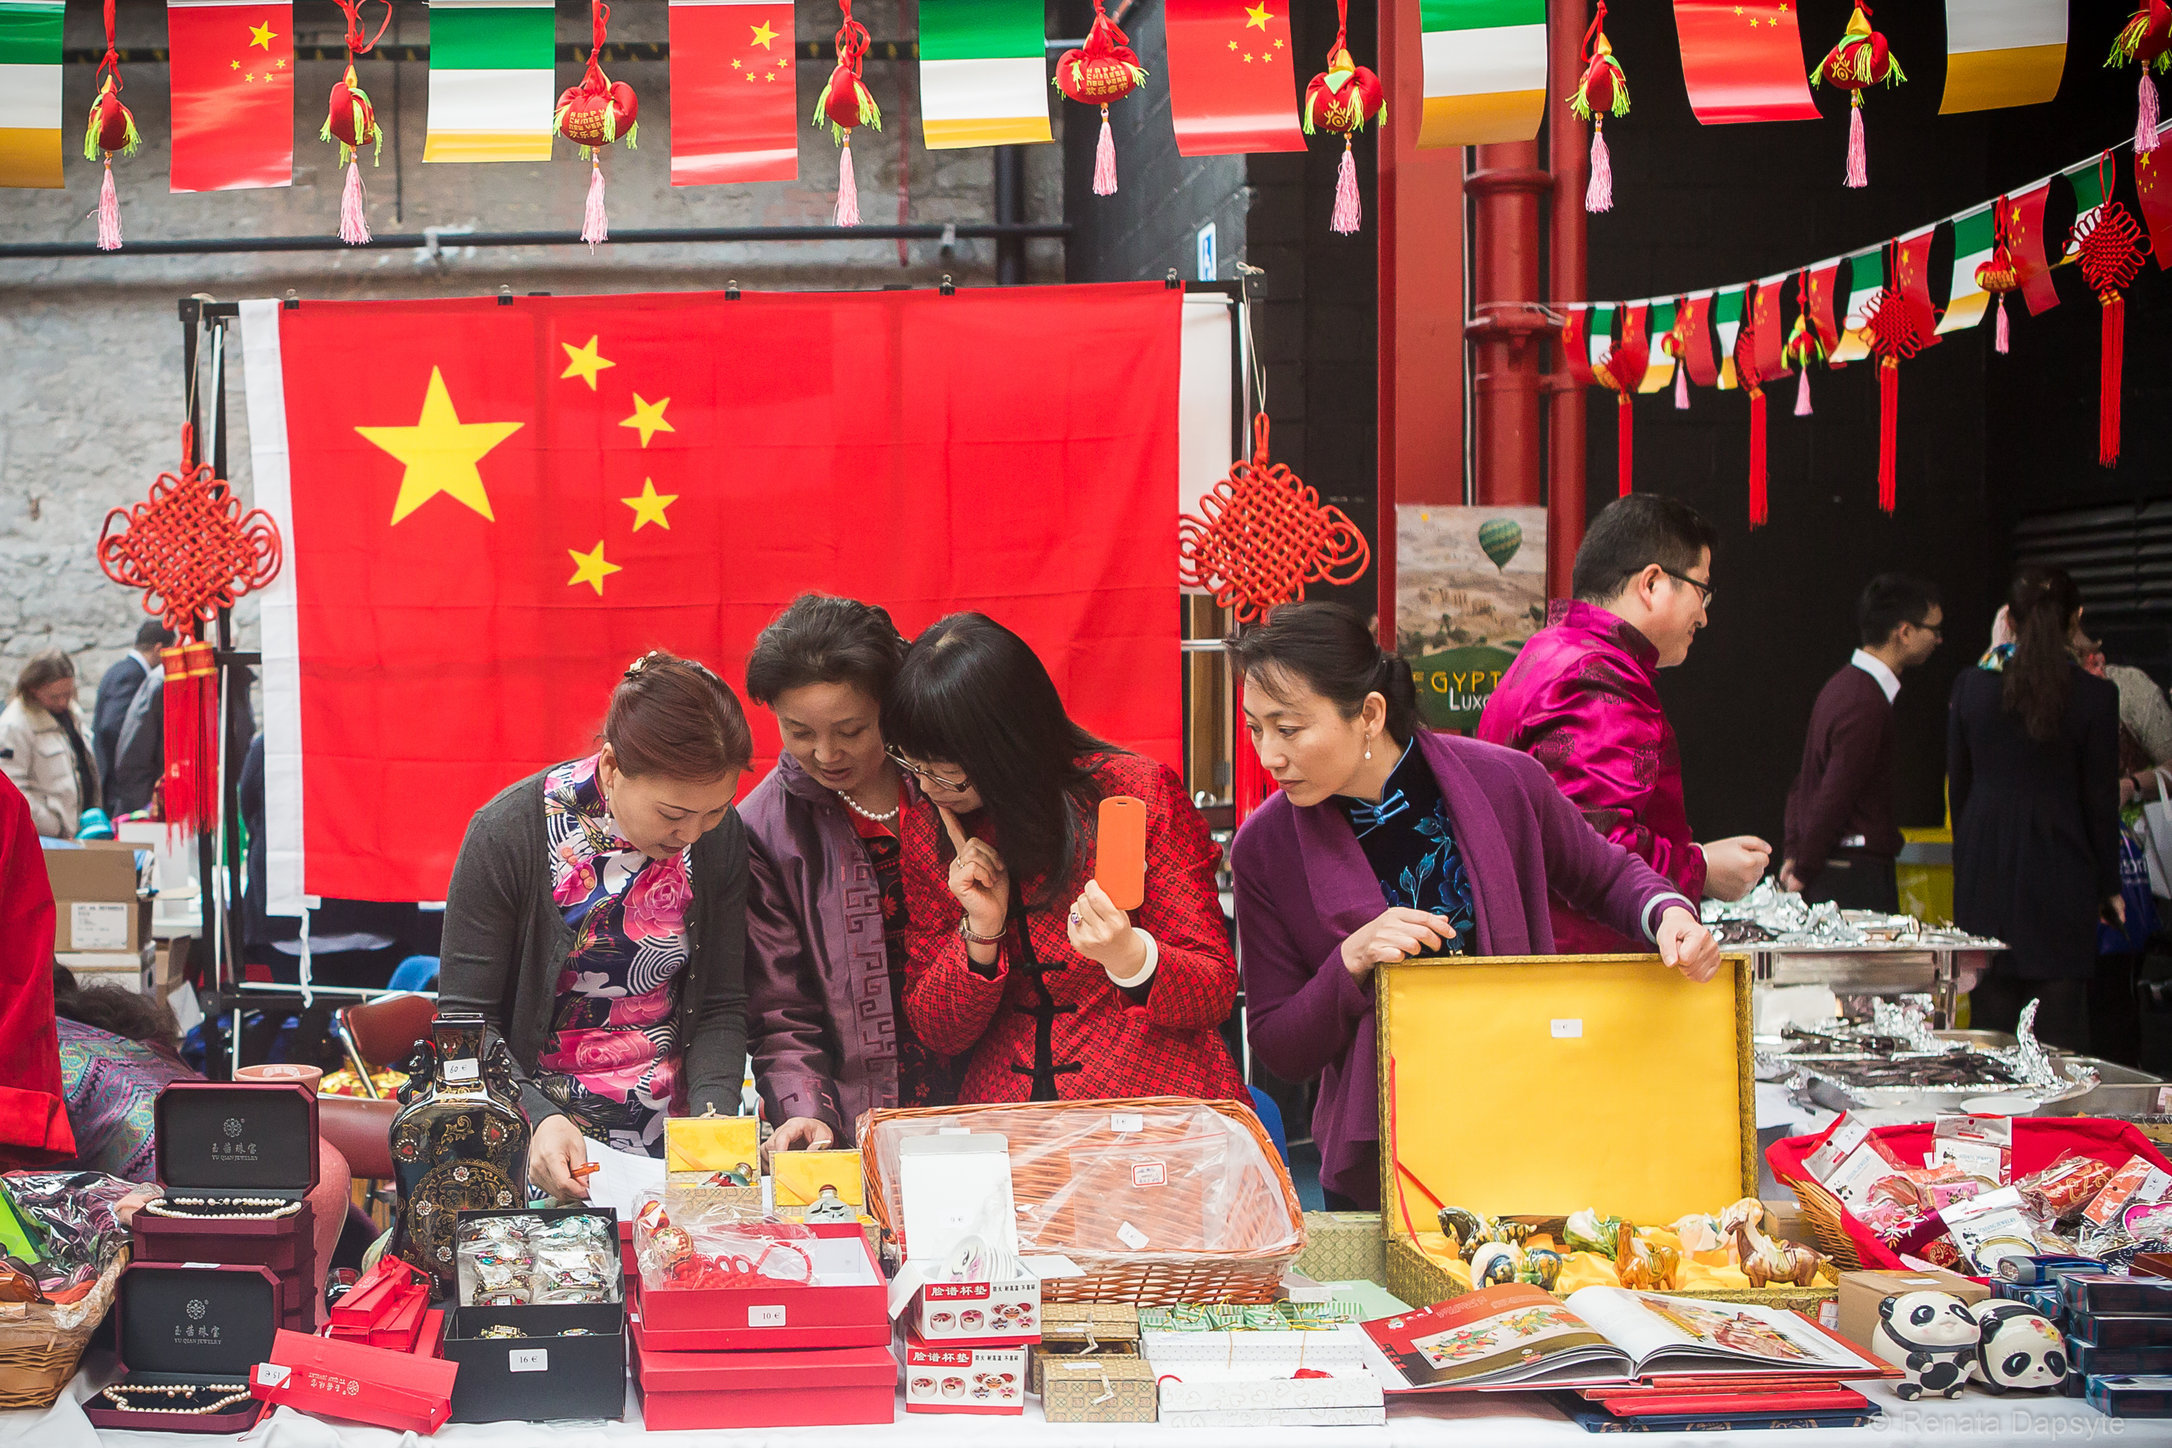 076_International Charity Bazaar Dublin 2013.JPG